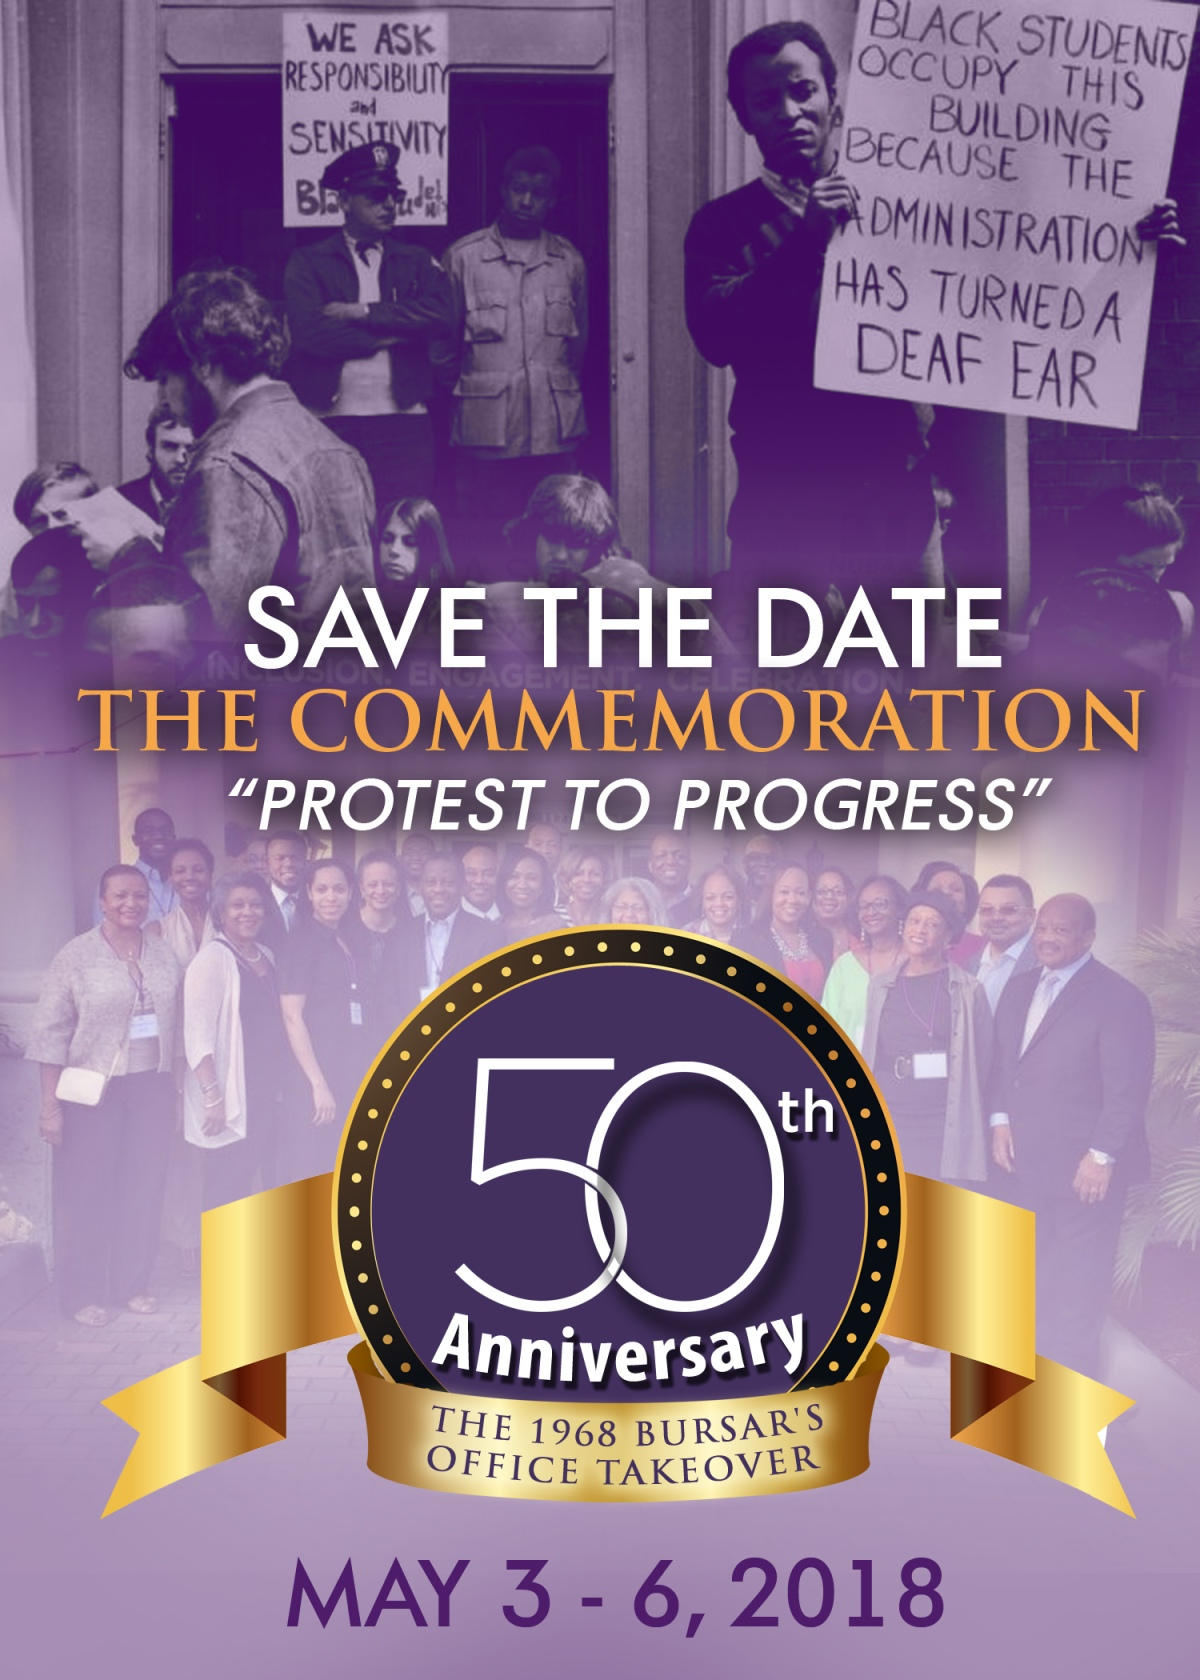 We're Thirty Days from the NUBAA 50th Anniversary Bursar's Office Takeover Commemoration Week: Join Us!